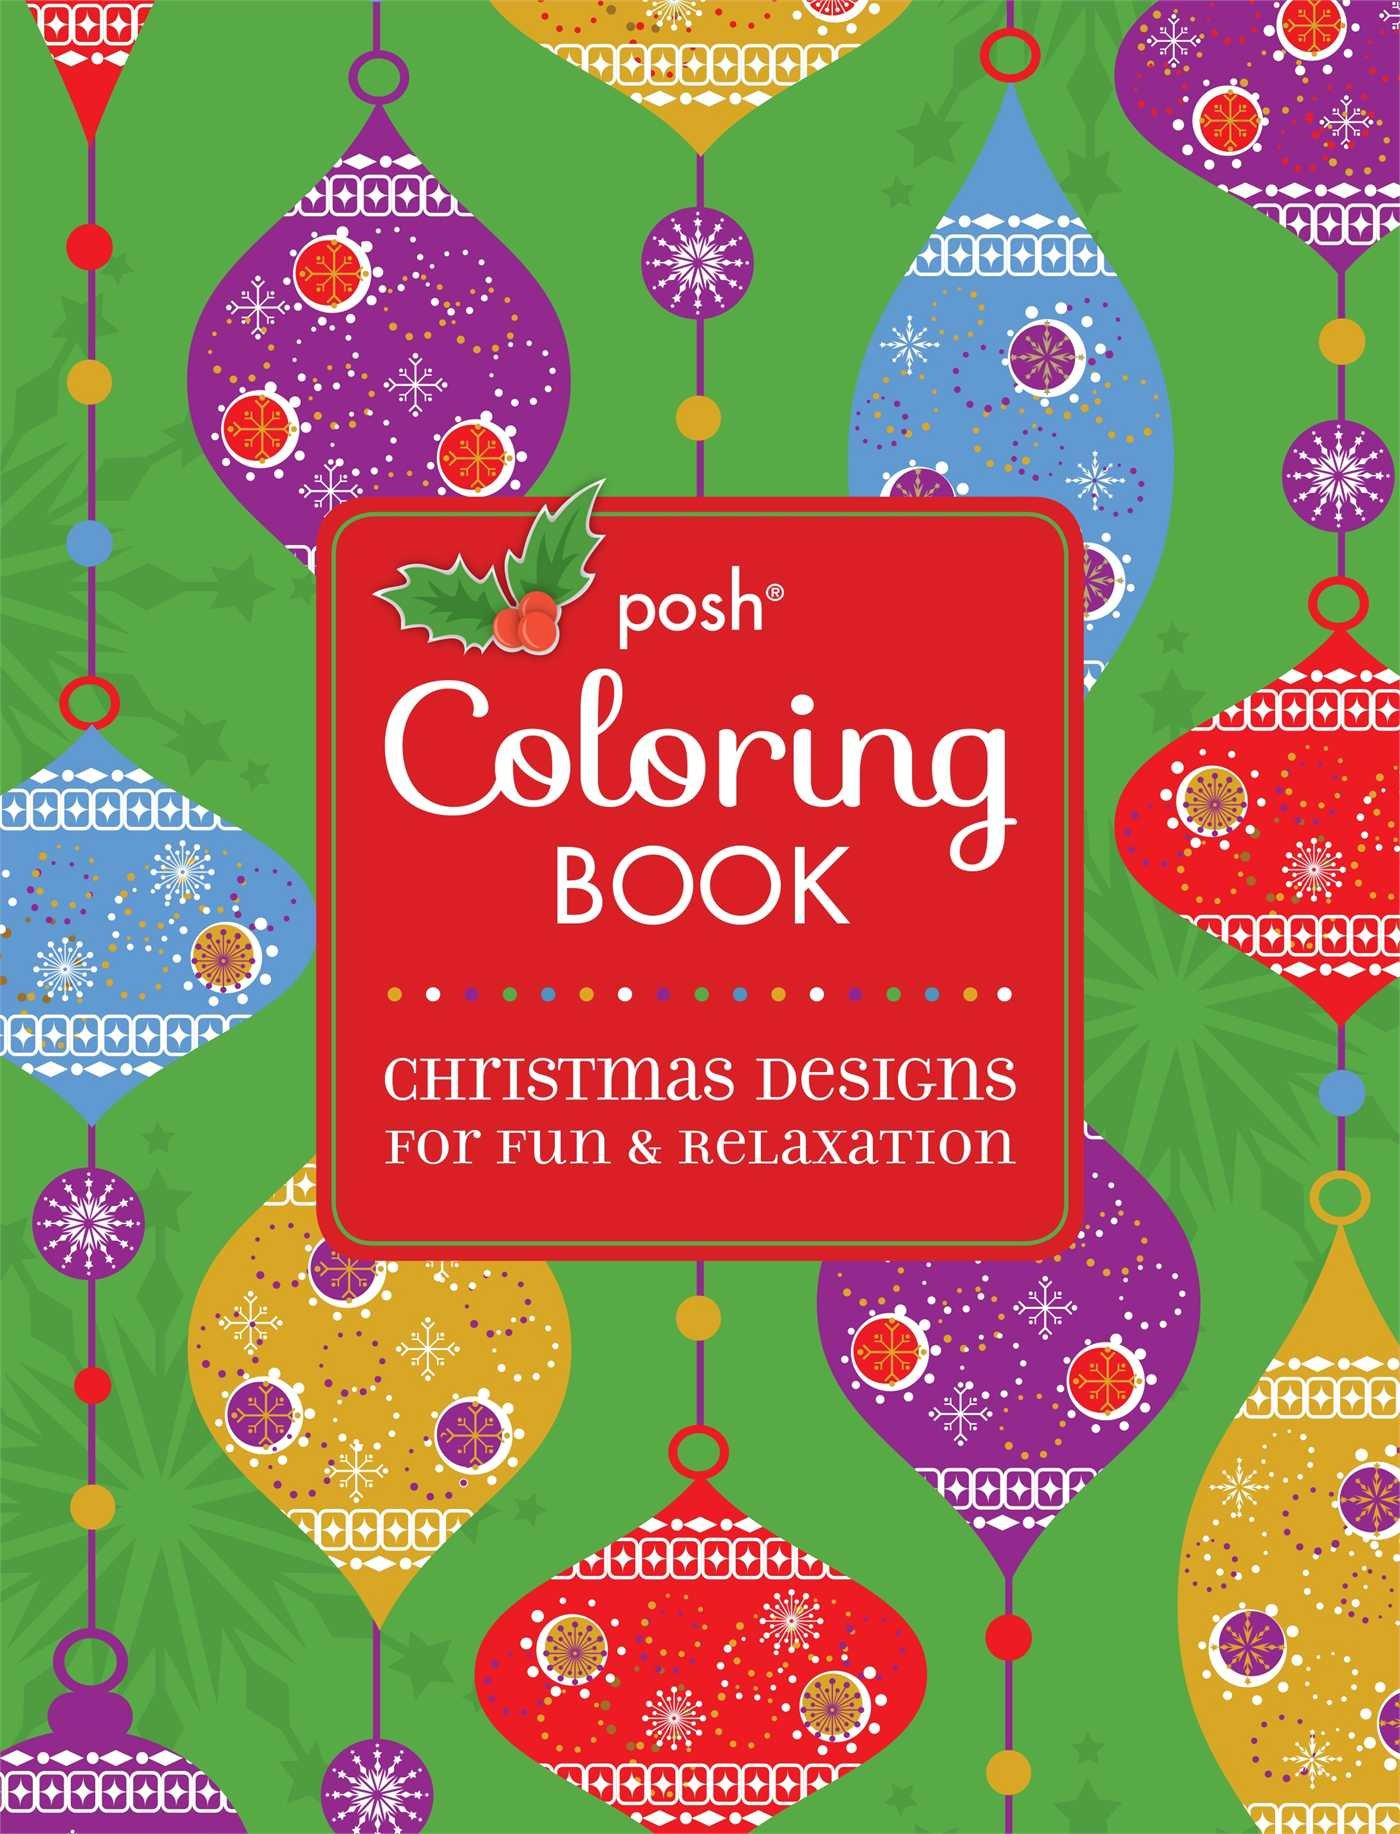 Posh Adult Coloring Book: Christmas Designs for Fun & Relaxation (Posh Coloring Books)